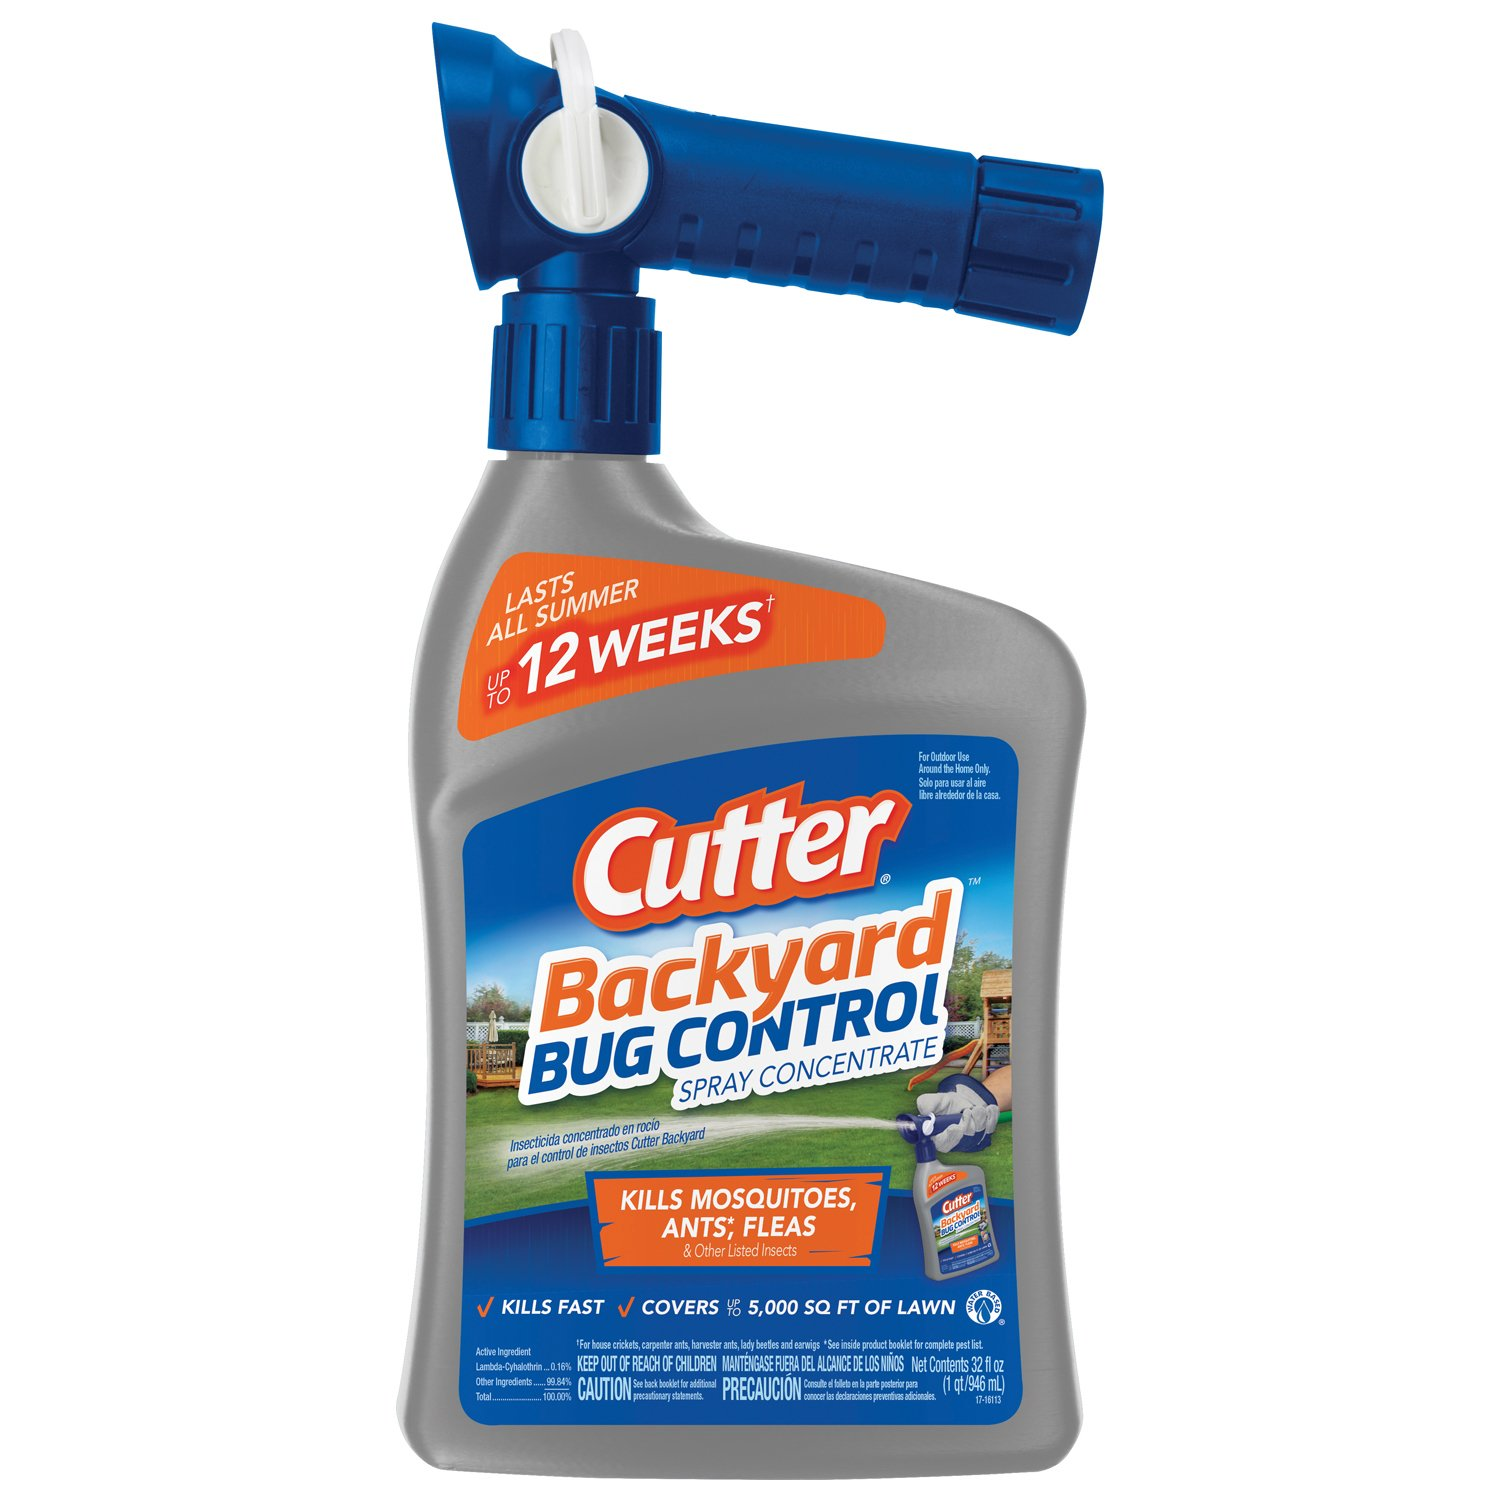 Amazon.com : Cutter Backyard Bug Control Spray Concentrate (HG-61067) (32  fl oz) : Insect Repelling Products : Garden & Outdoor - Amazon.com : Cutter Backyard Bug Control Spray Concentrate (HG-61067